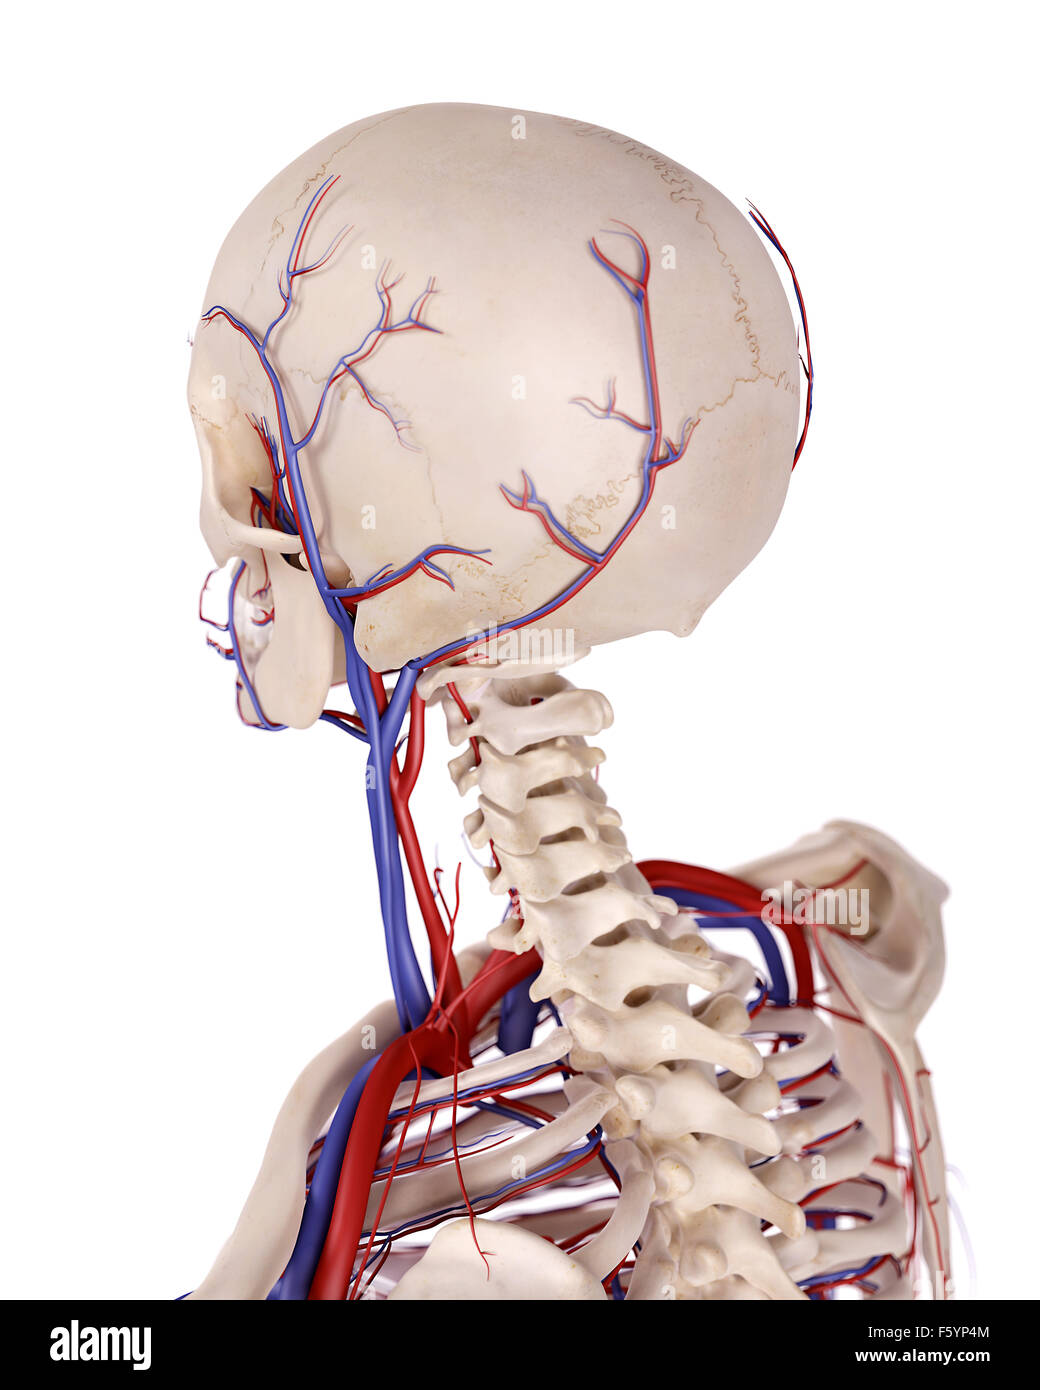 Blood Vessels Of The Head Stock Photos Blood Vessels Of The Head